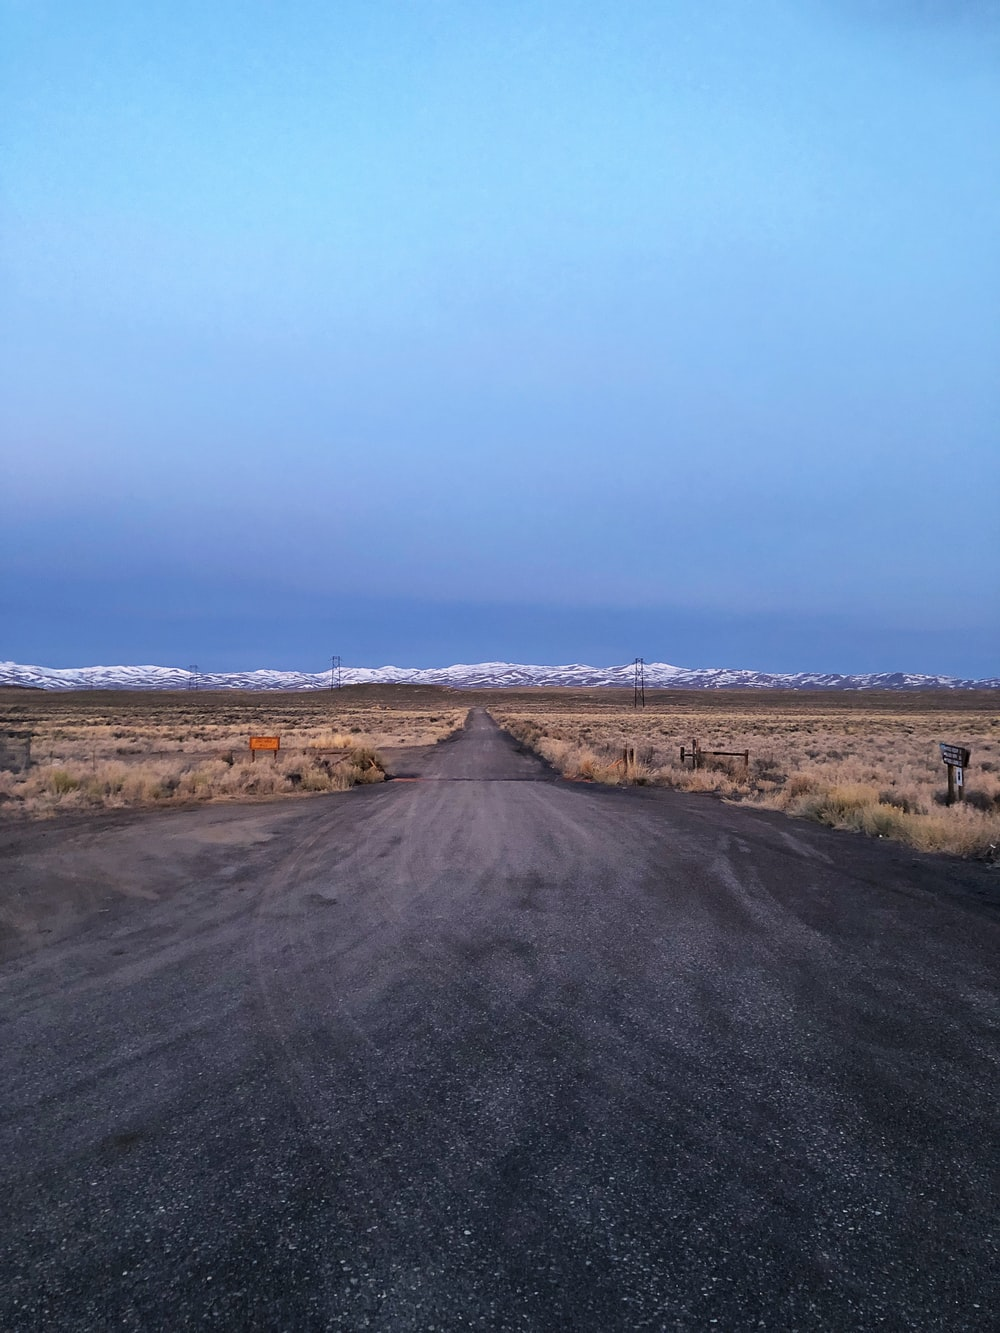 dirt road and mountains at the distance during day